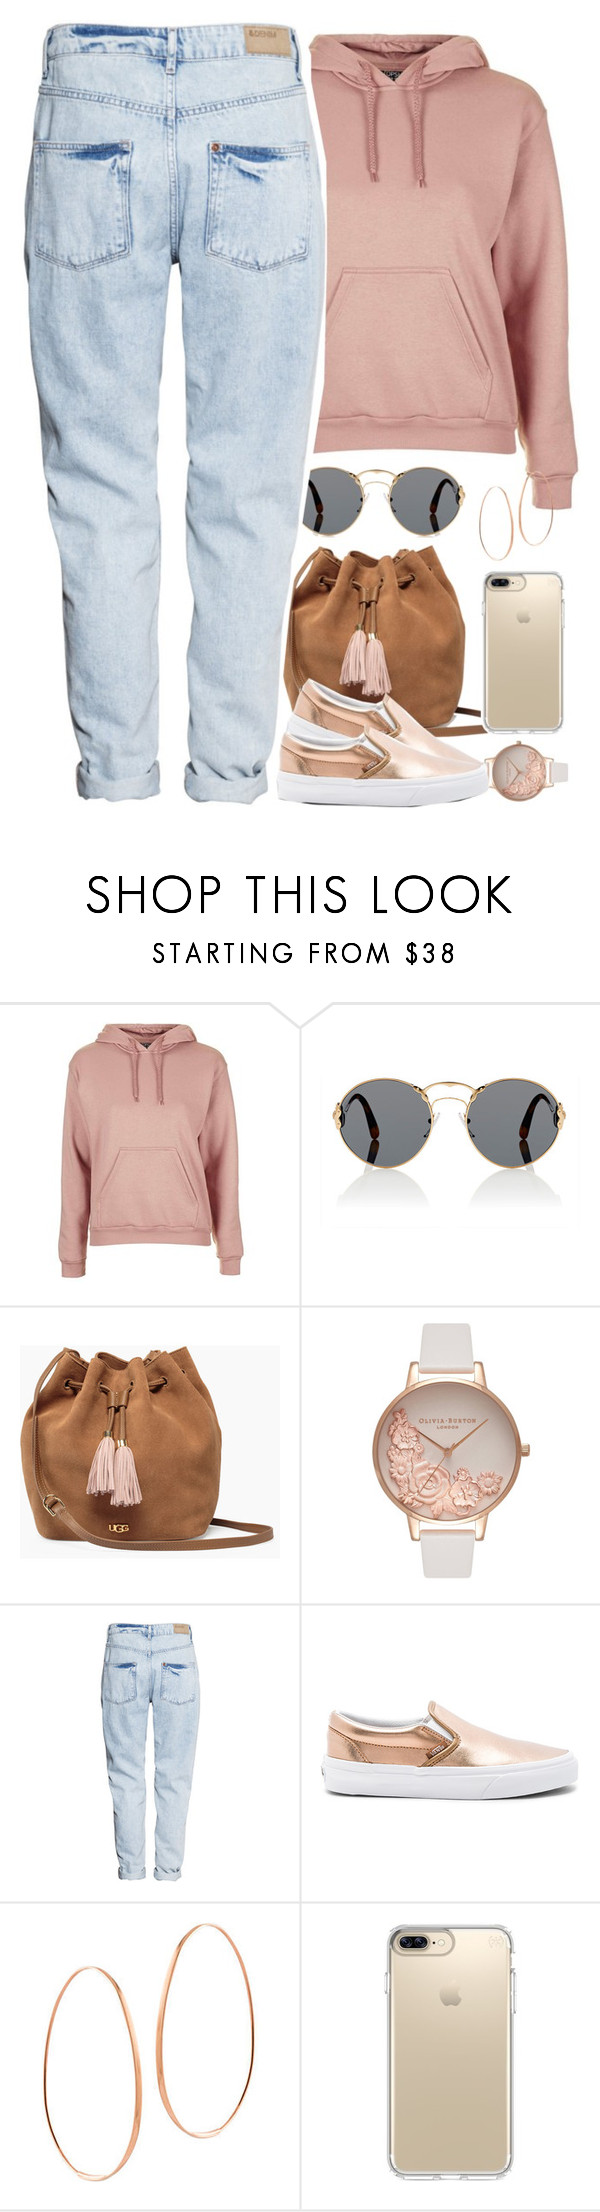 """""""."""" by daisym0nste ❤ liked on Polyvore featuring Topshop, Prada, UGG, Olivia Burton, H&M, Vans, Lana and Speck"""